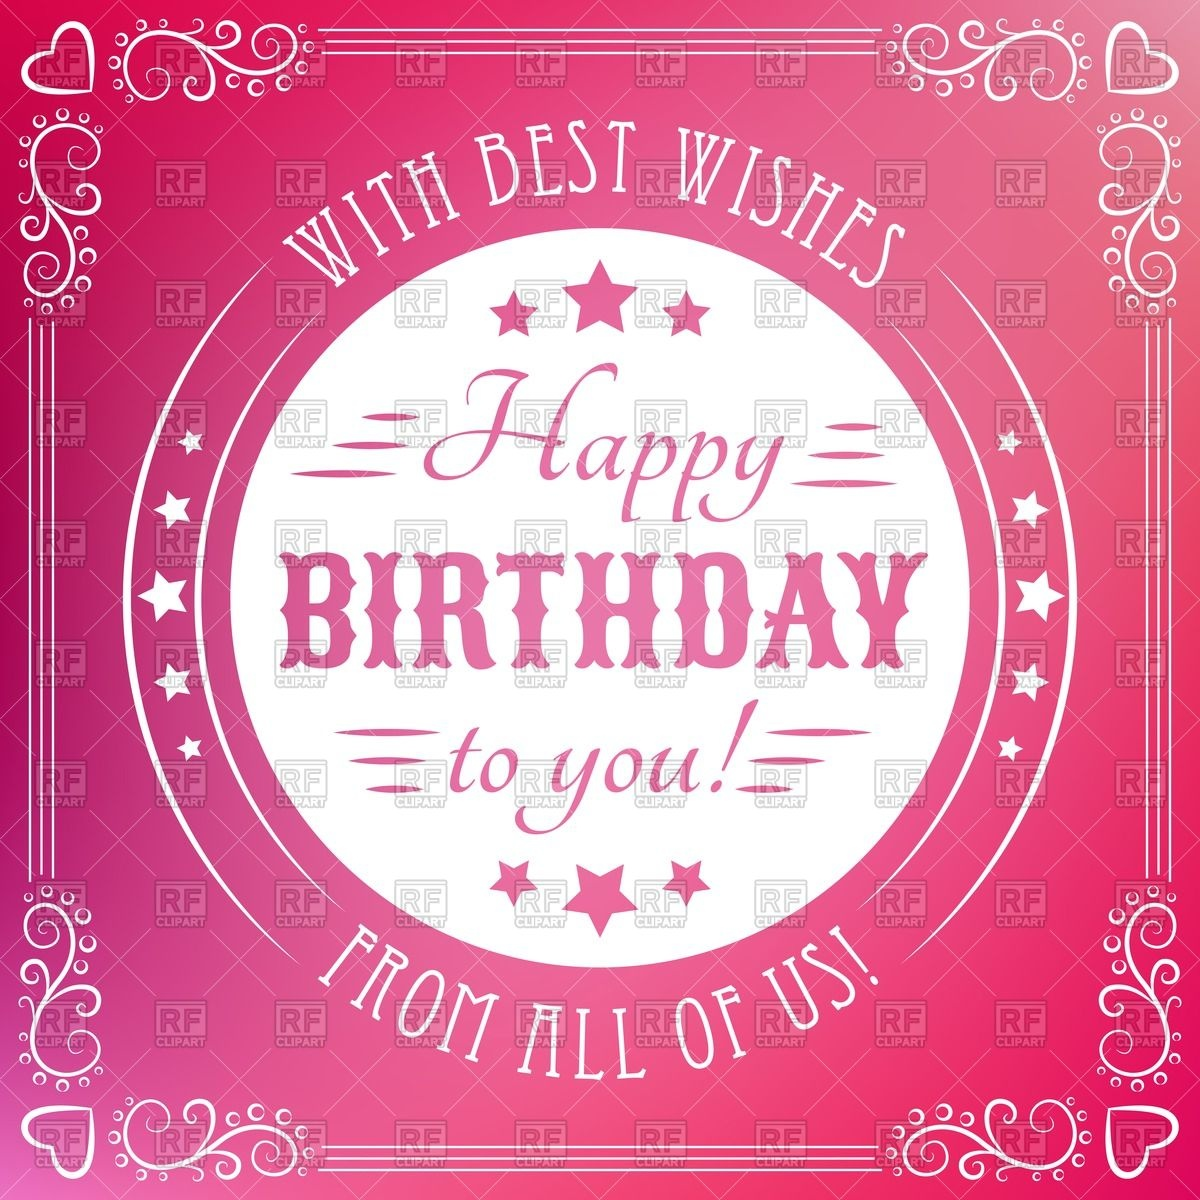 happy birthday poster with photo ; happy-birthday-poster-with-round-retro-frame-and-vignettes-Download-Royalty-free-Vector-File-EPS-80710